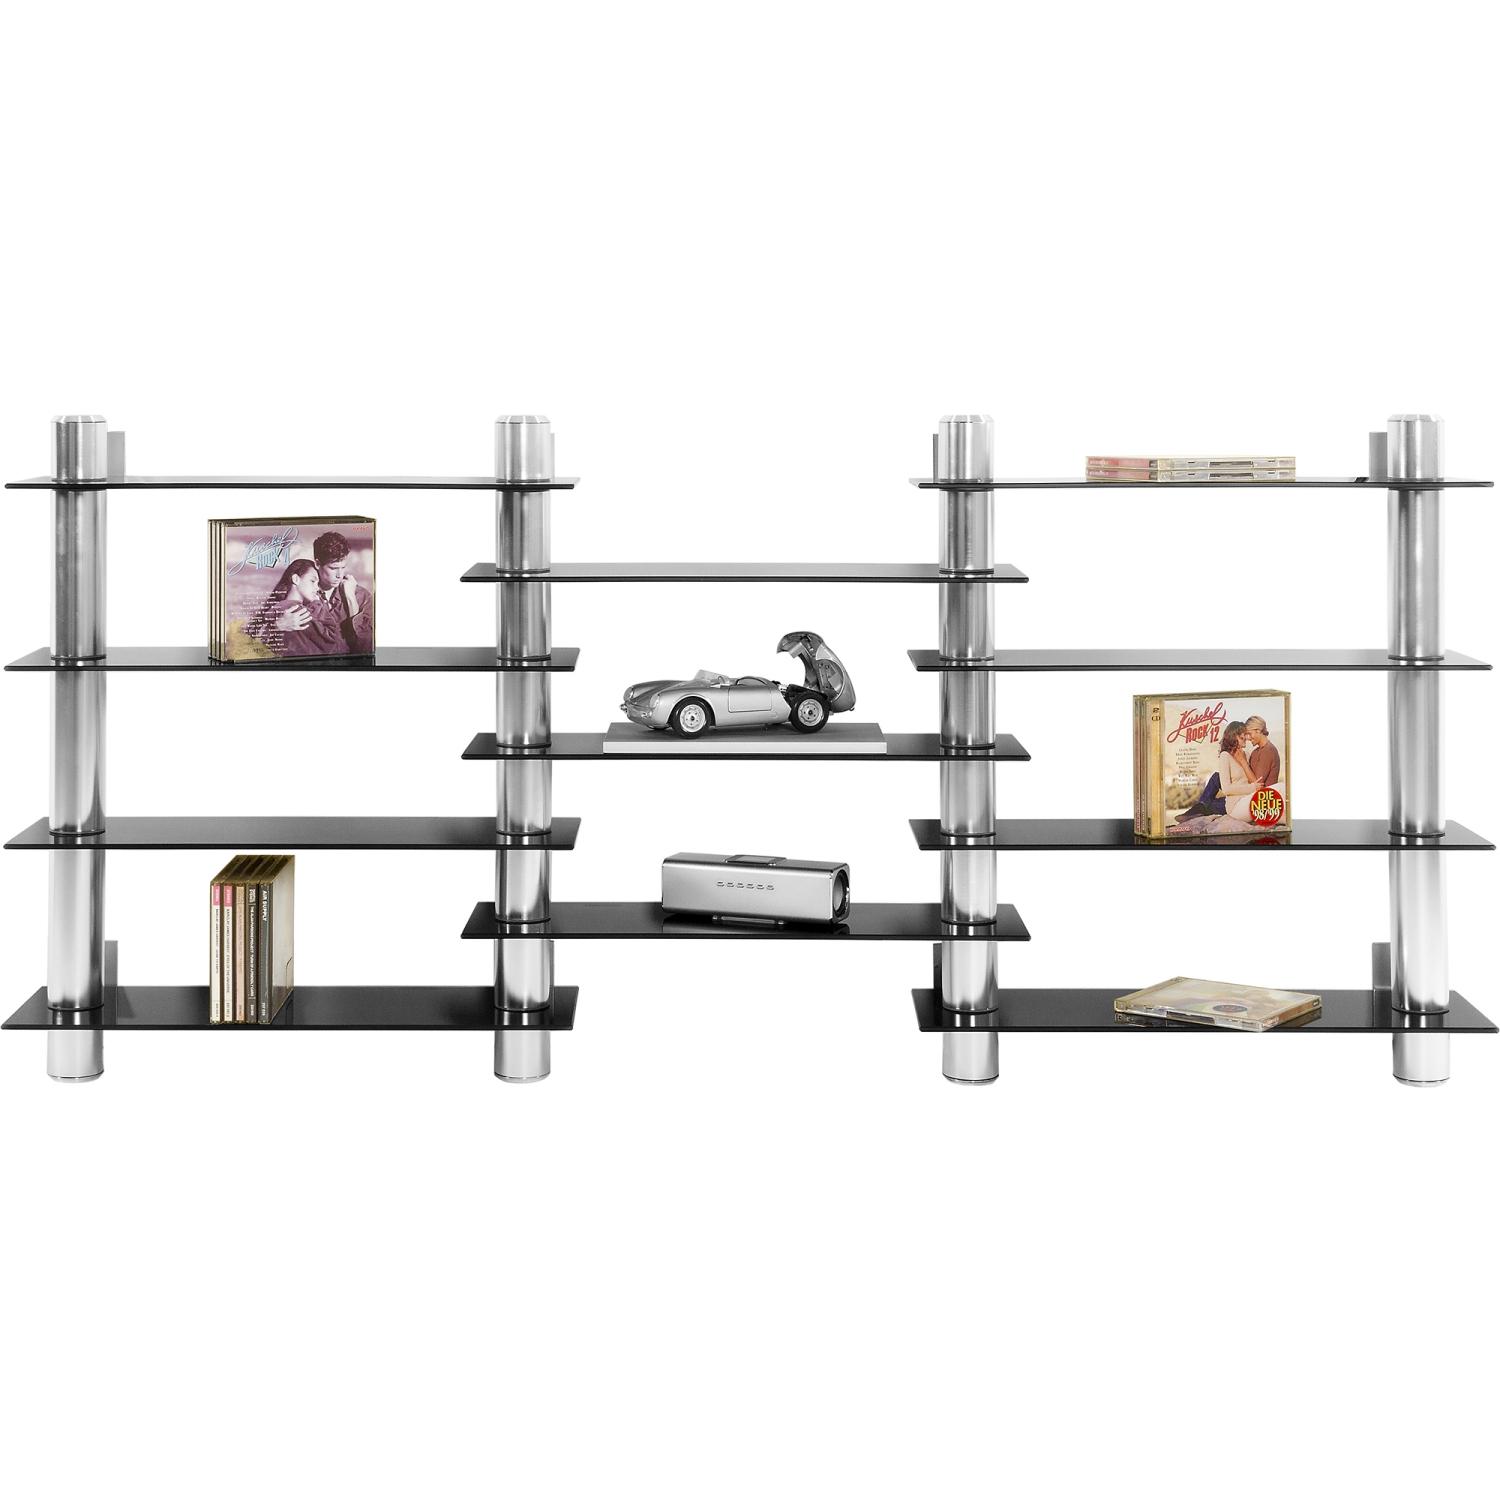 stilista cd dvd schwarz glas regal wandregal 300 cds alu ebay. Black Bedroom Furniture Sets. Home Design Ideas